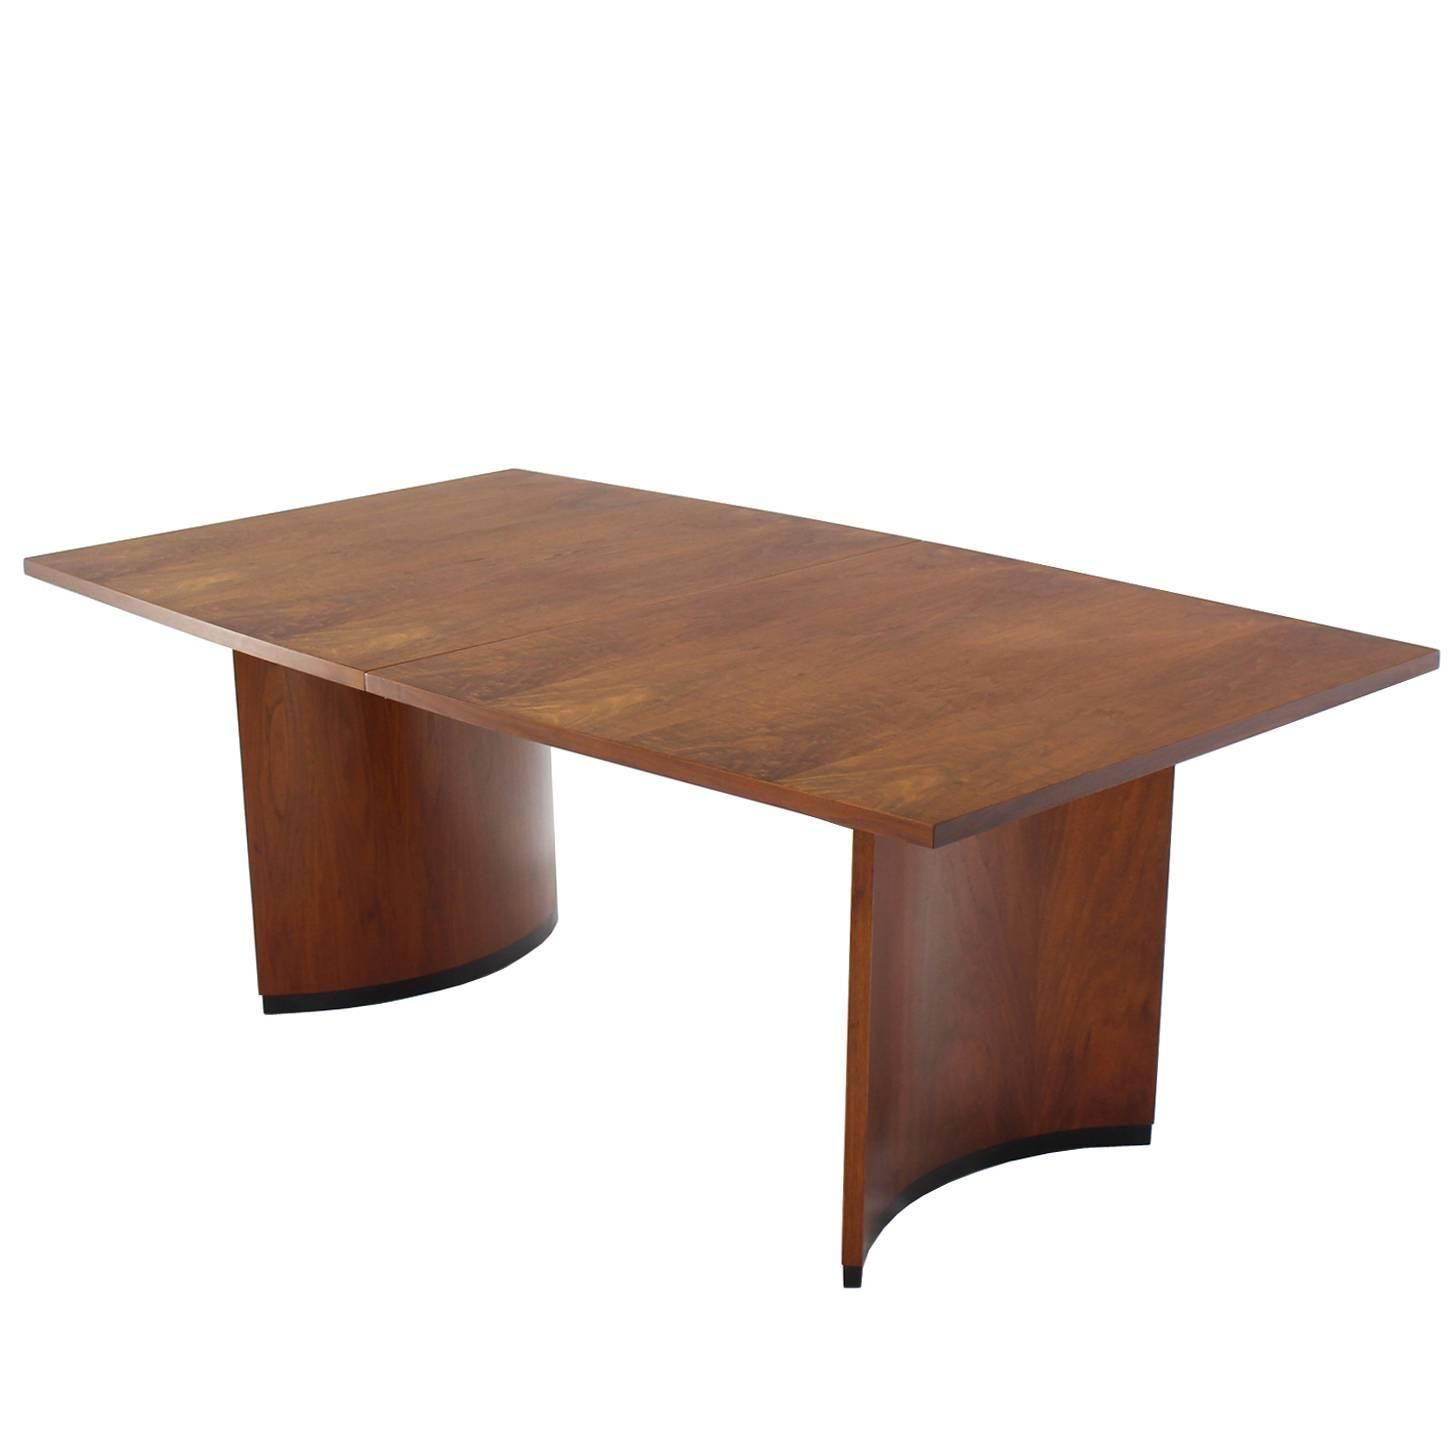 Very Nice Mid Century Modern Walnut Dining Table With Two Extension Leaves